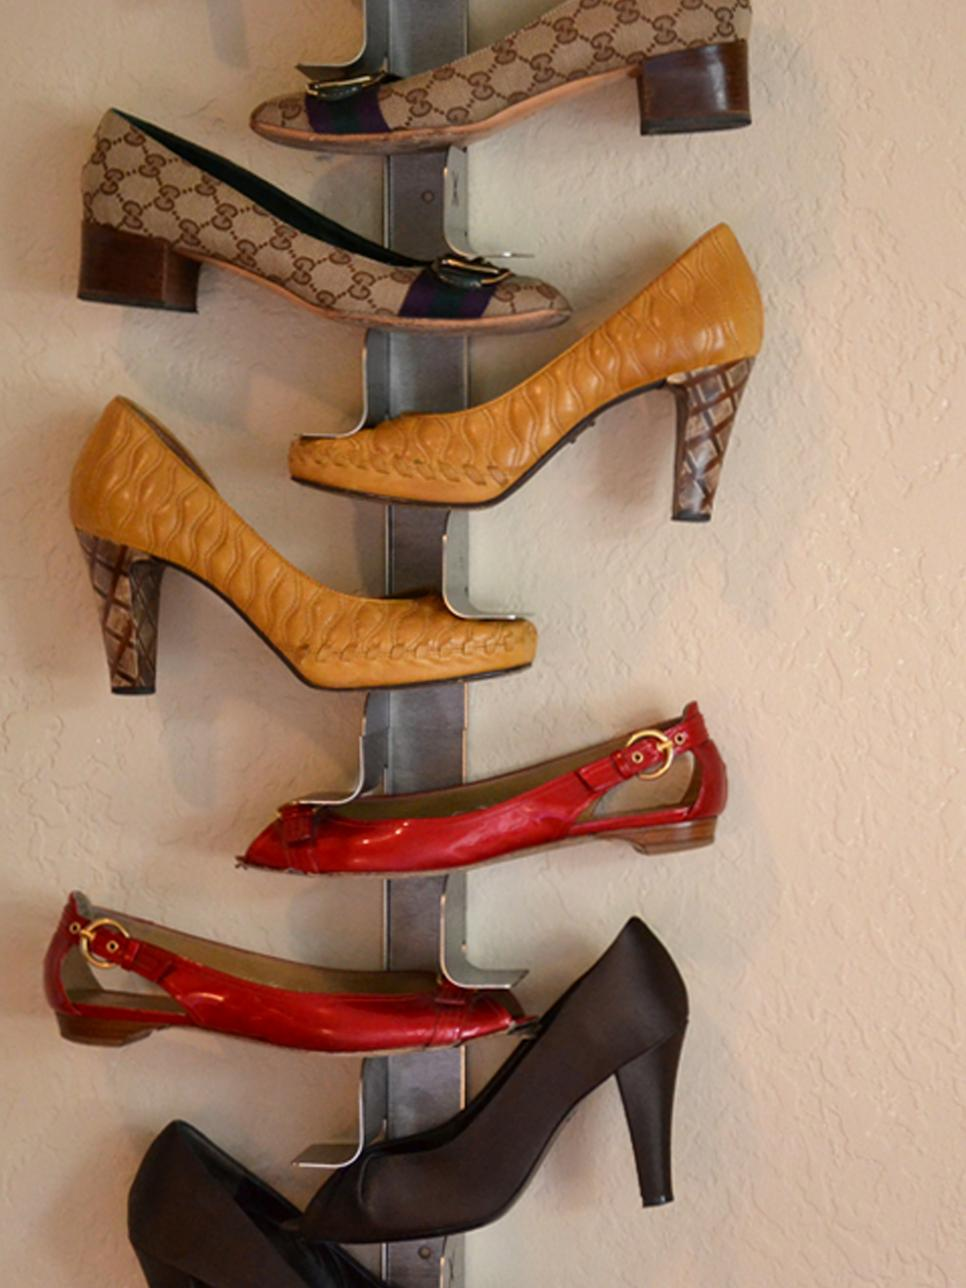 Unusual Shoe Storage Idea to Vertically Arrange the Shoes to Display